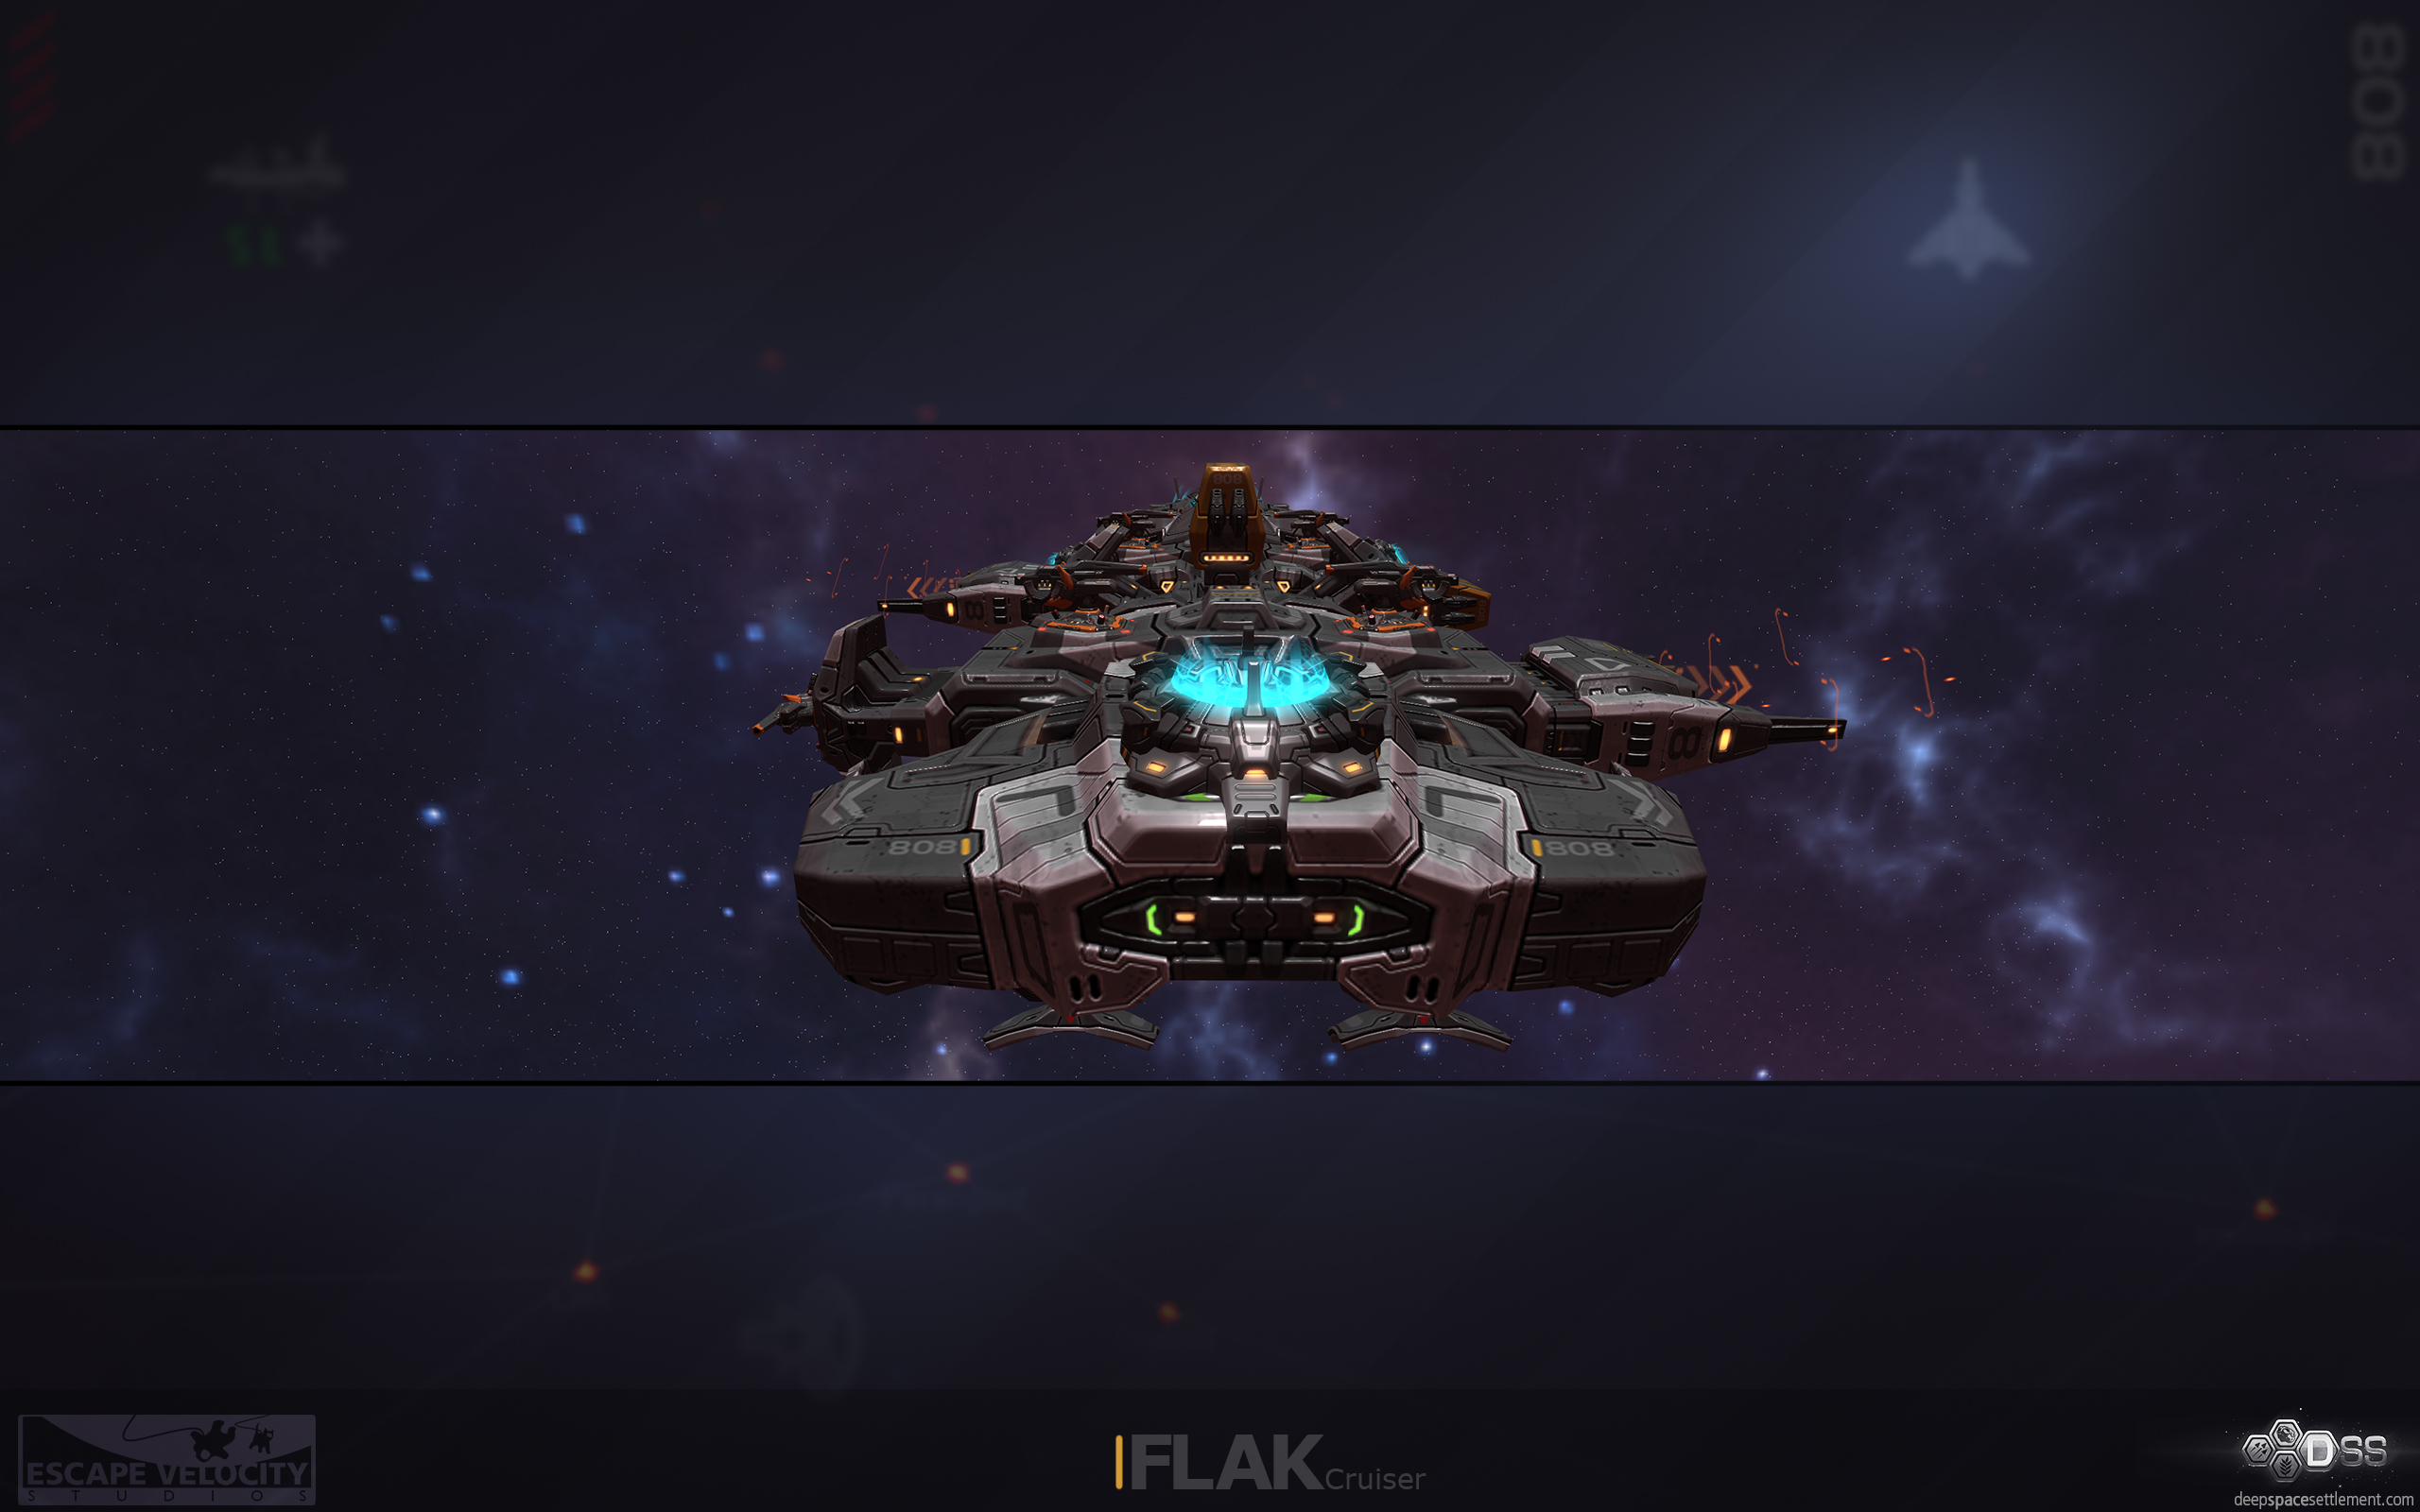 Flak cruiser wallpaper image deep space settlement mod db - Deep space 3 wallpaper engine ...